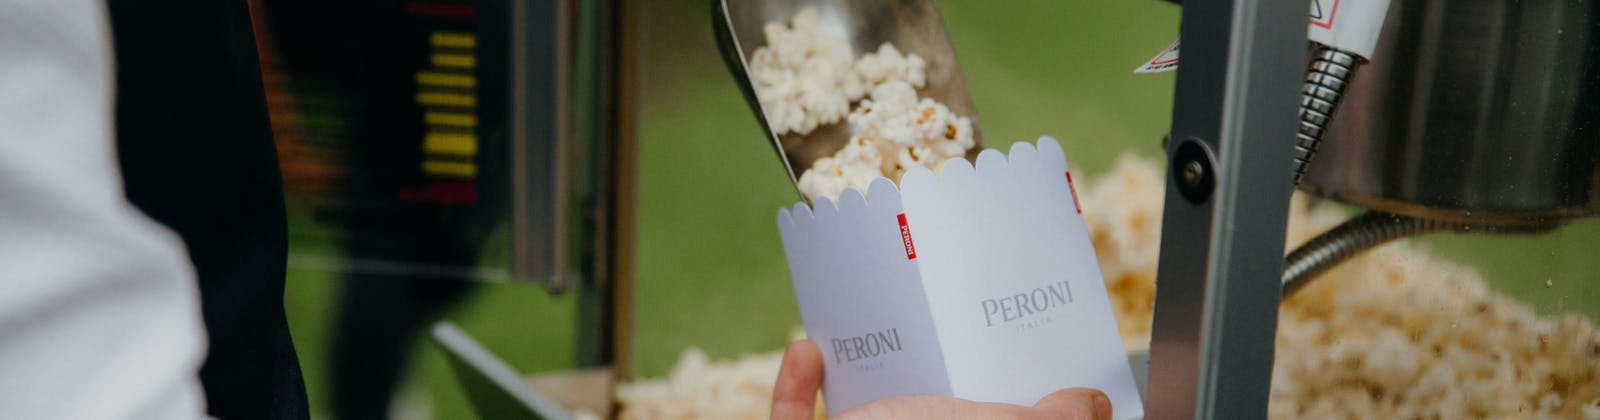 Peroni outdoor cinemas in Britomart